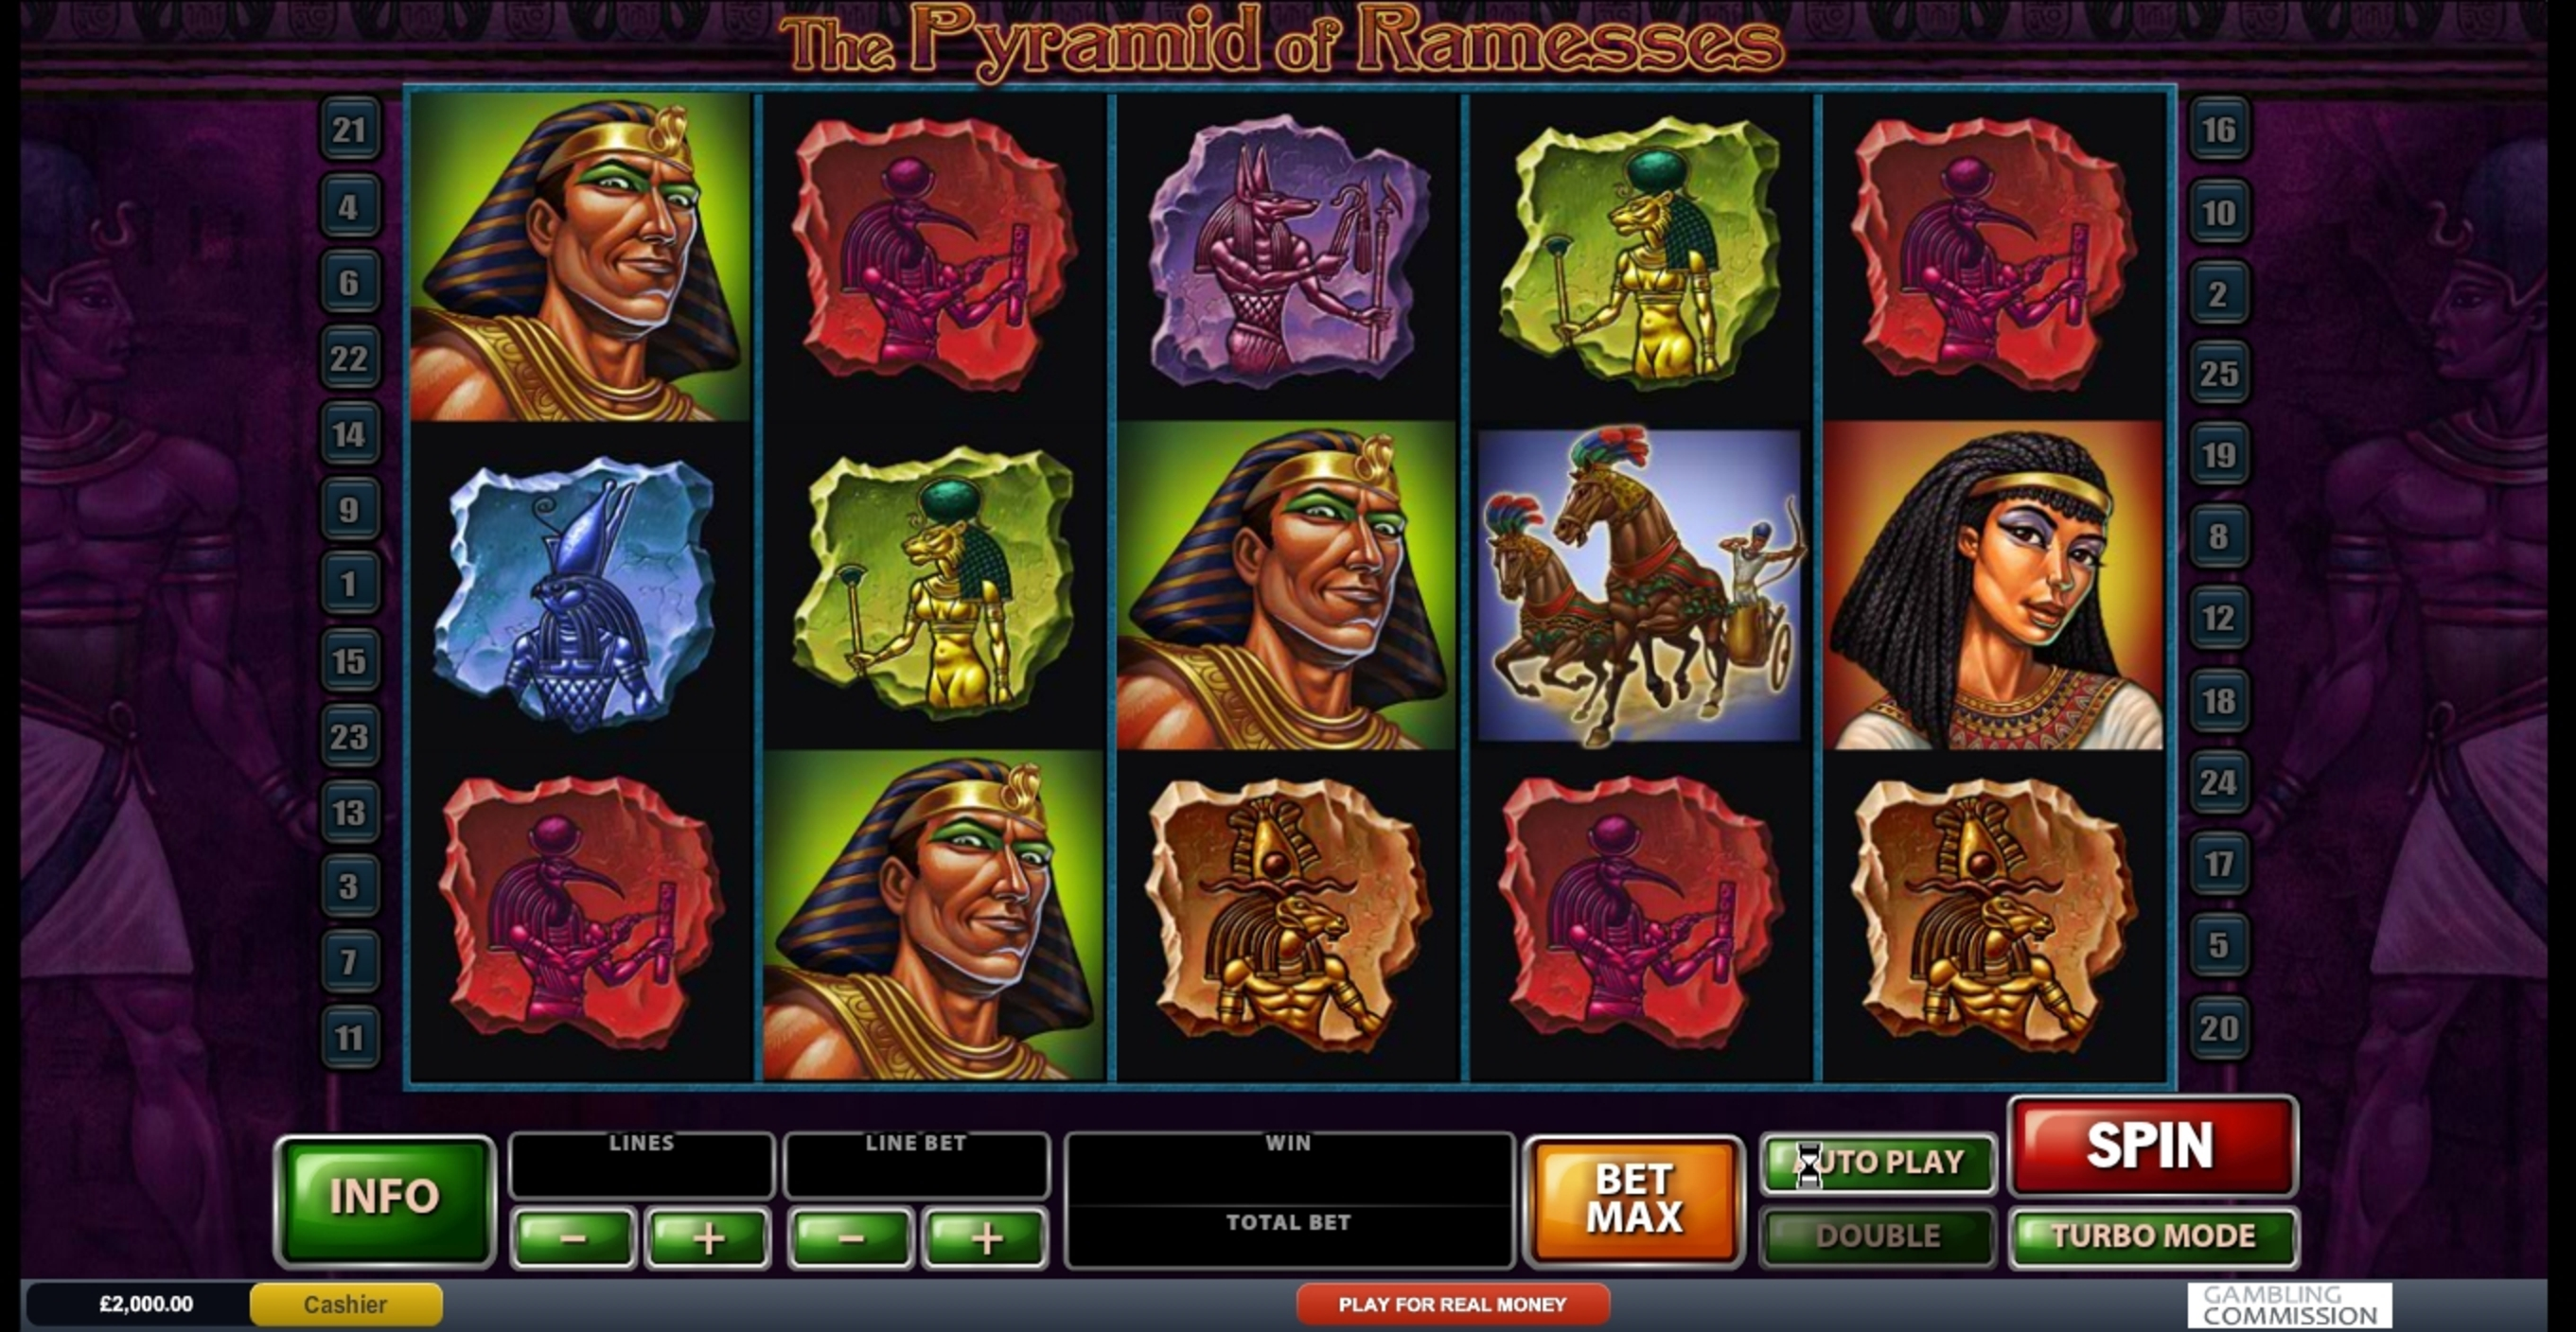 Reels in The Pyramid of Ramesses (Playtech) Slot Game by Playtech